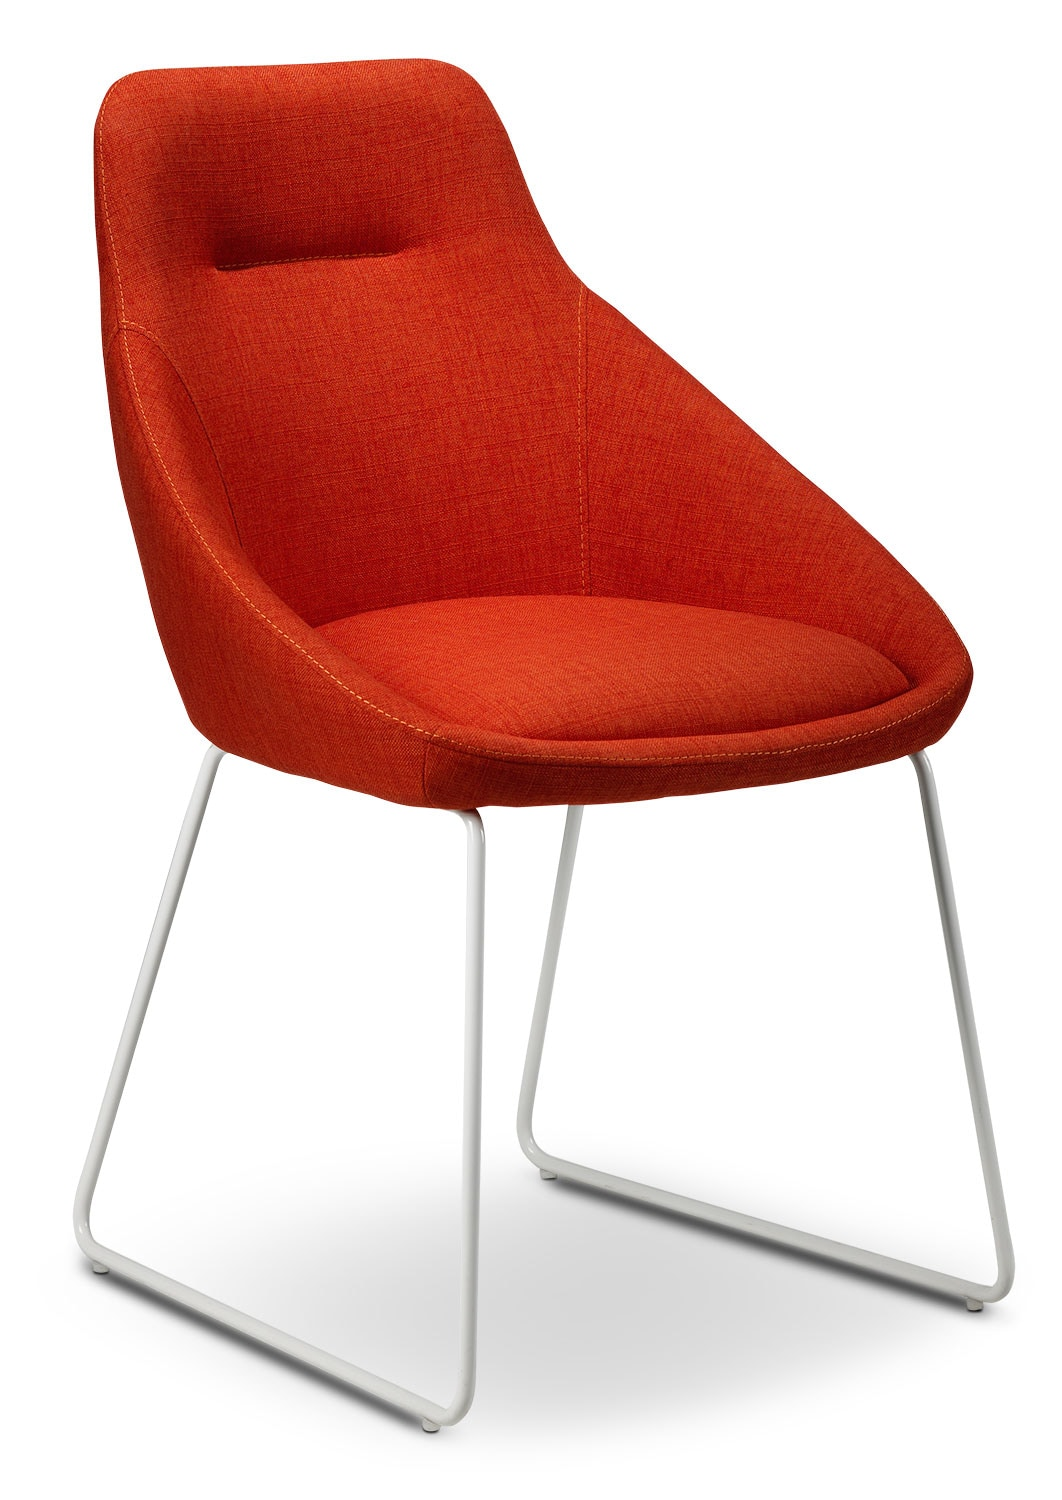 Sunshine Chair - Poppy Red